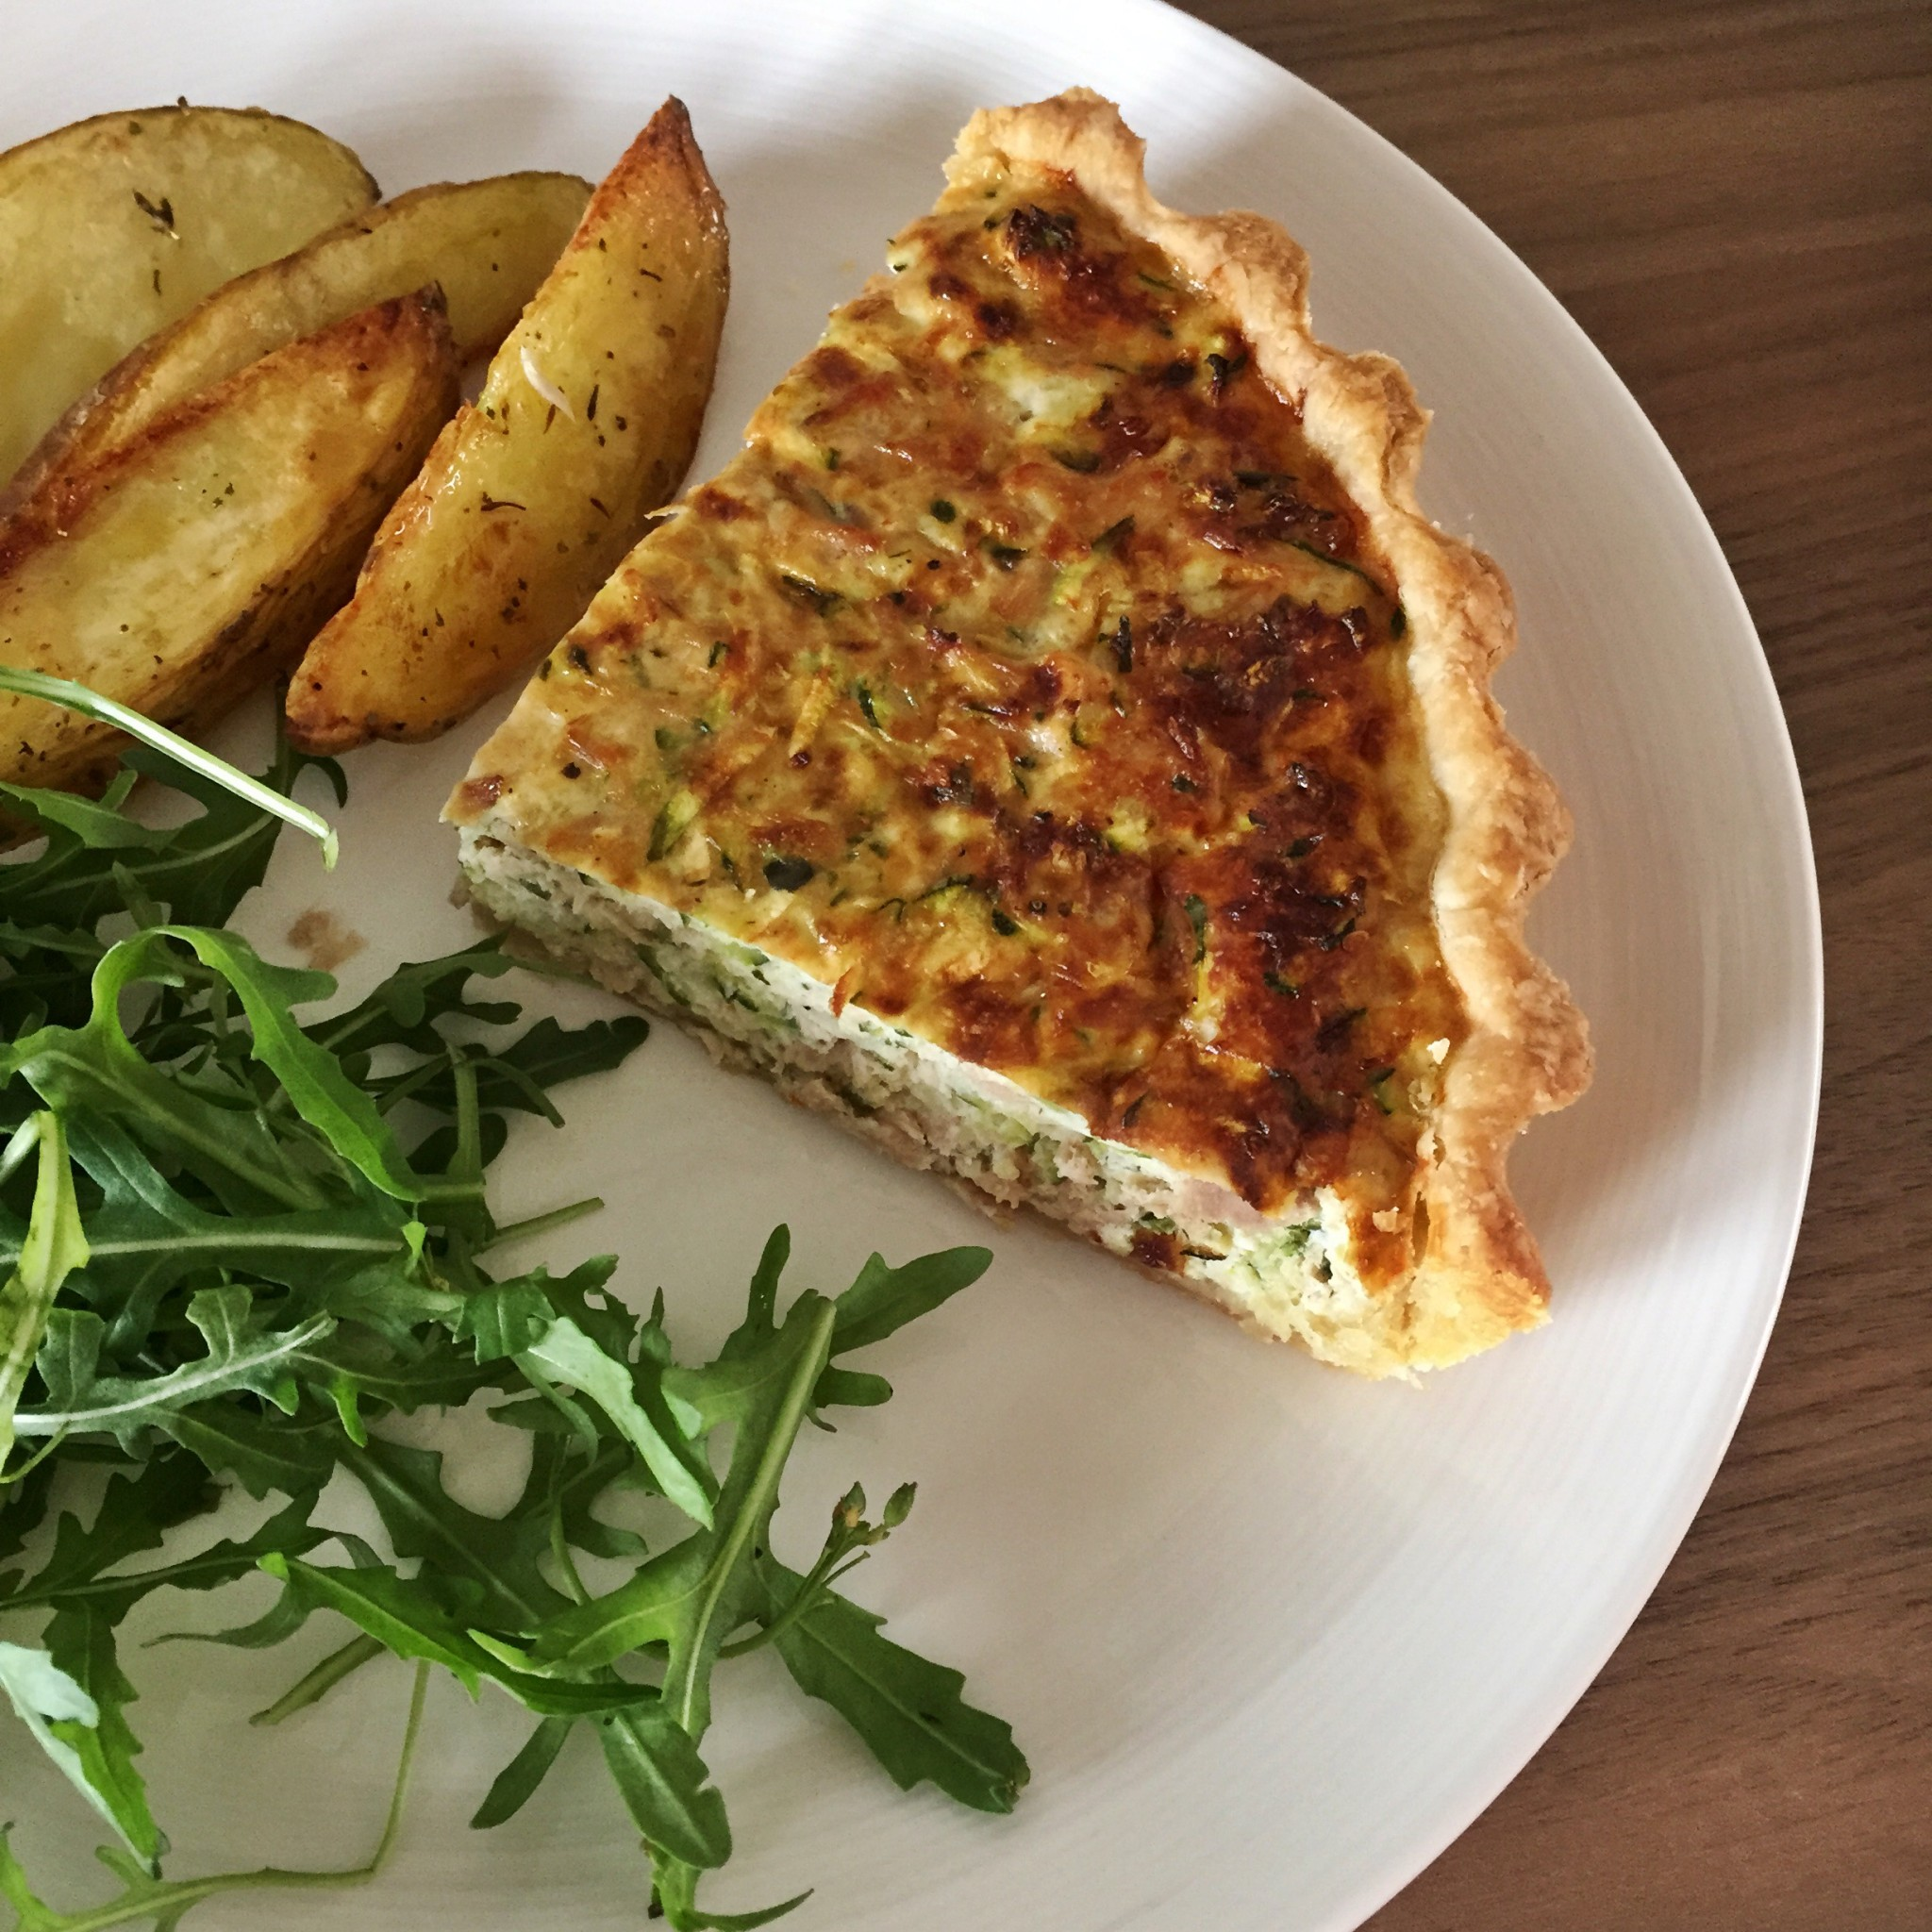 Tuna and courgette quiche is served | Hello! Hooray!